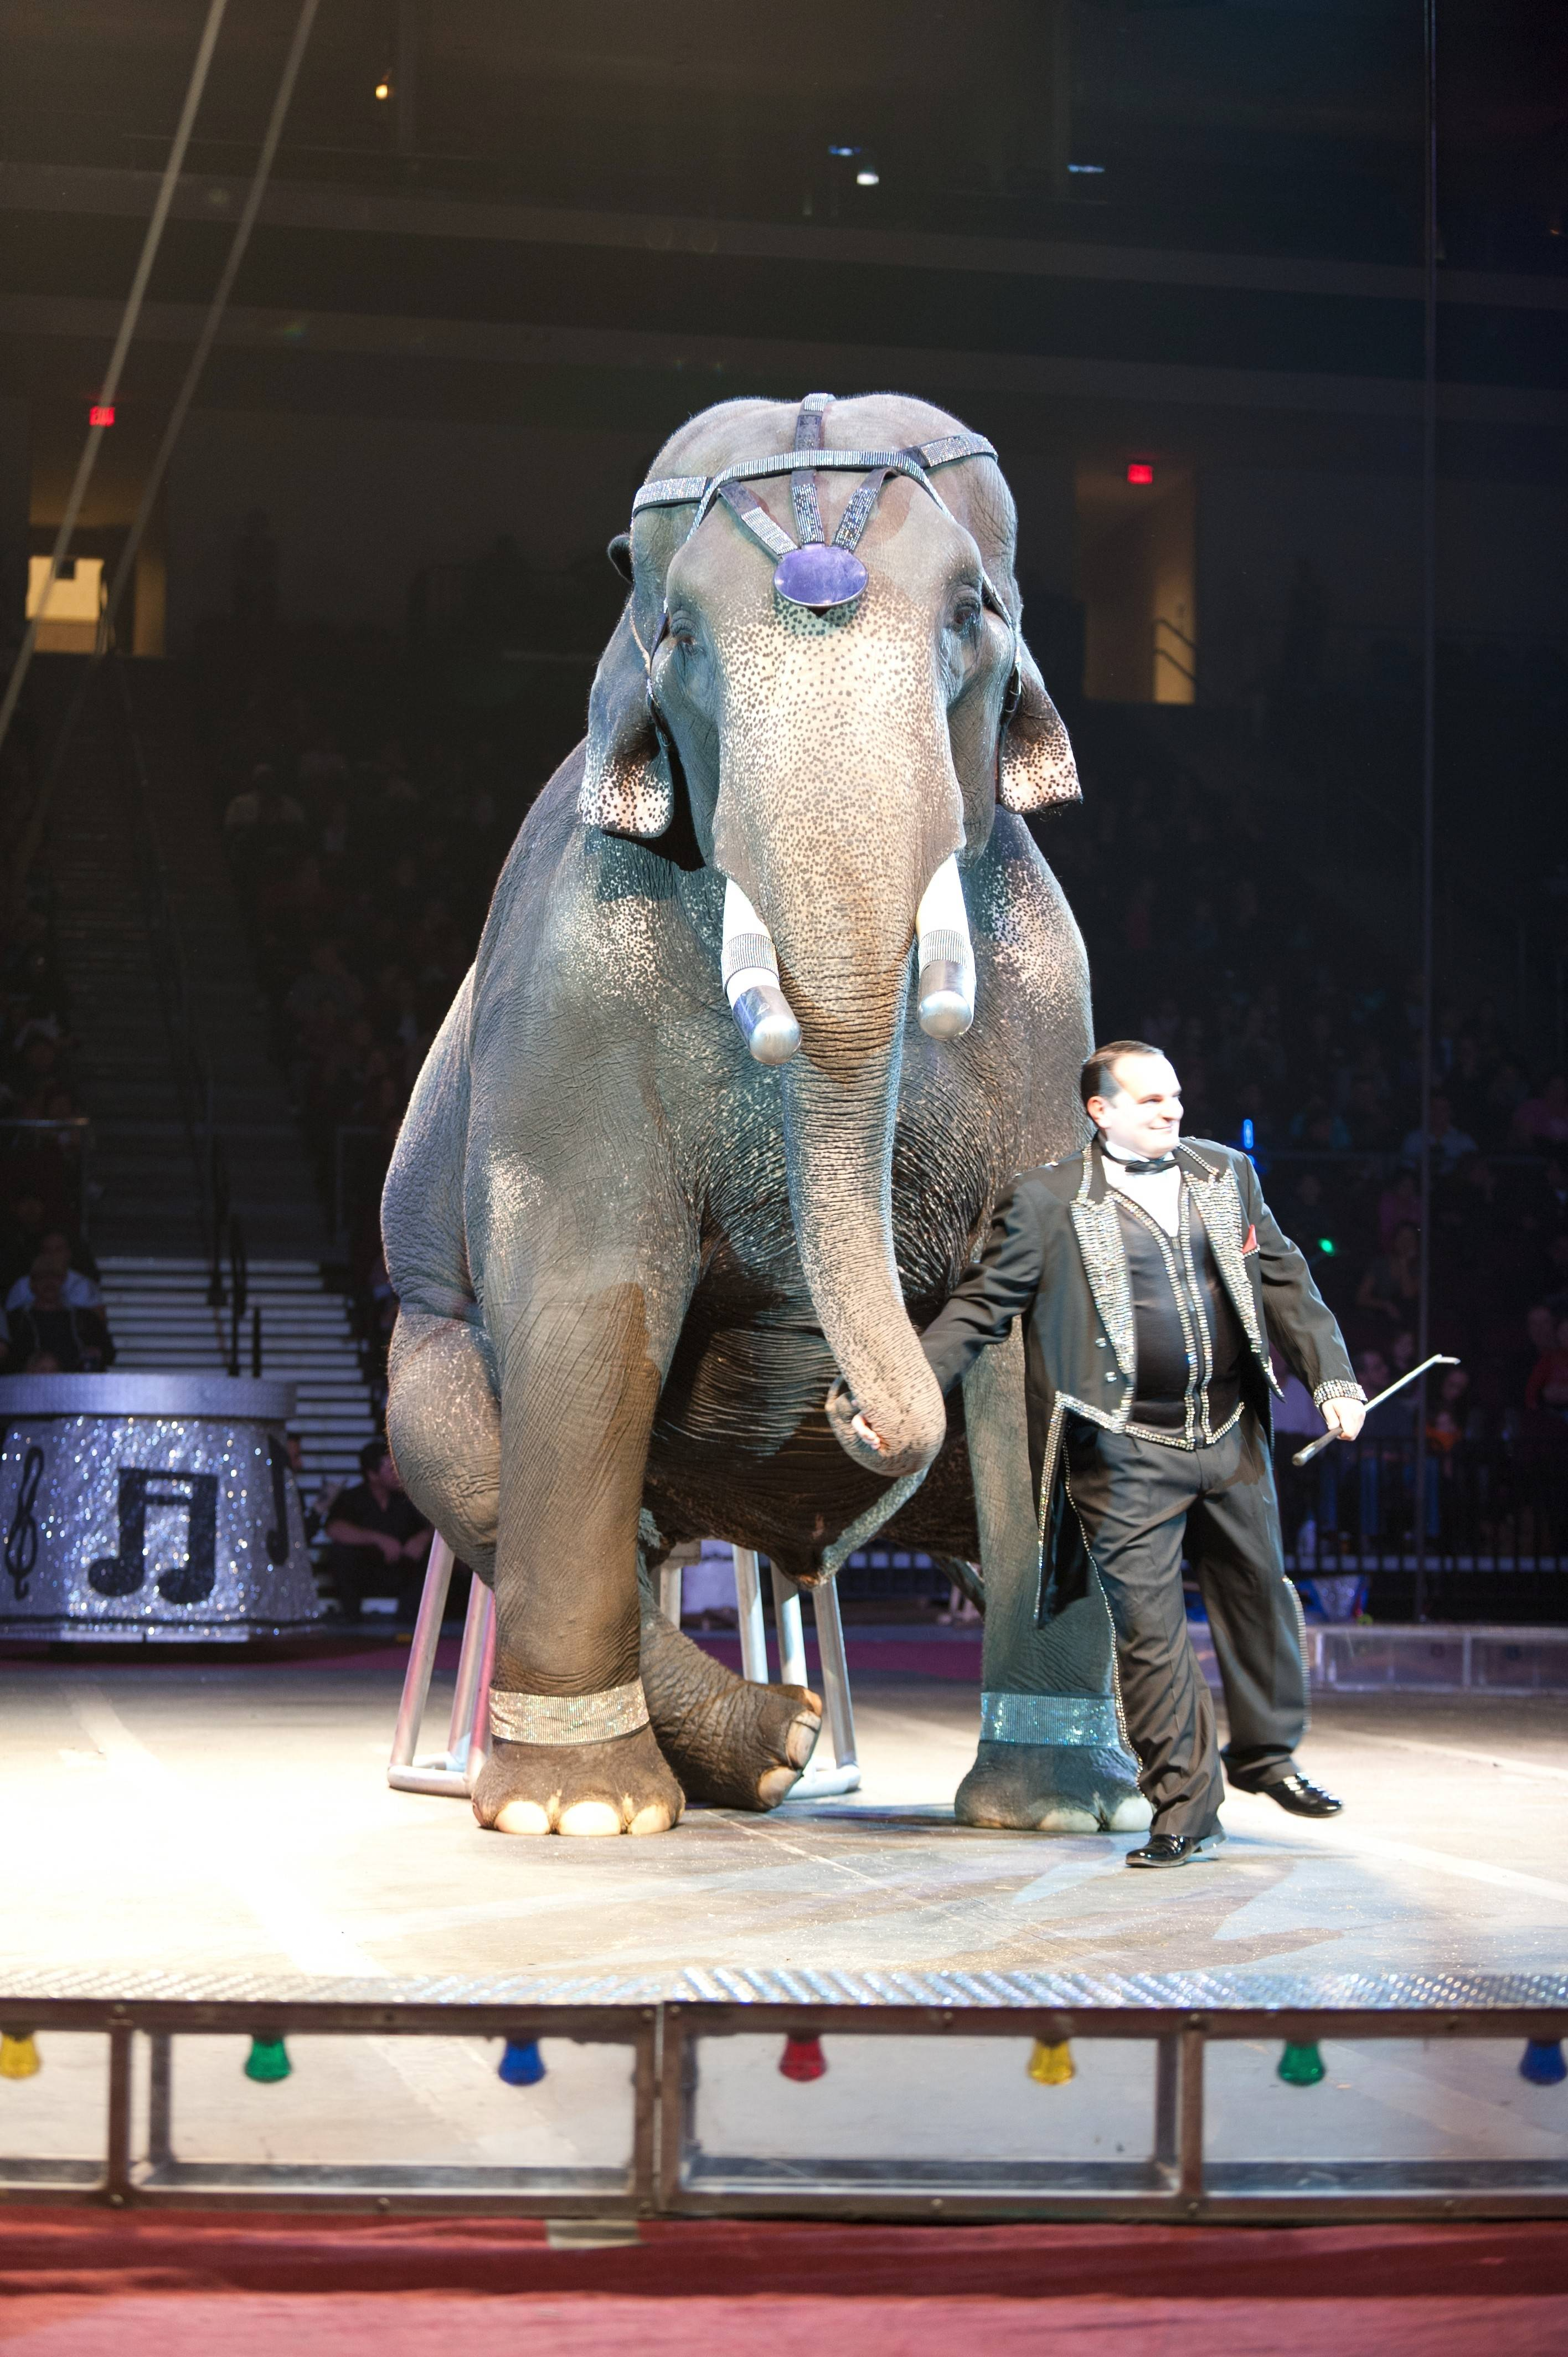 See elephants, tigers, motorcycling tricksters and more when the Circus Spectacular comes to the Sears Centre Arena in Hoffman Estates.